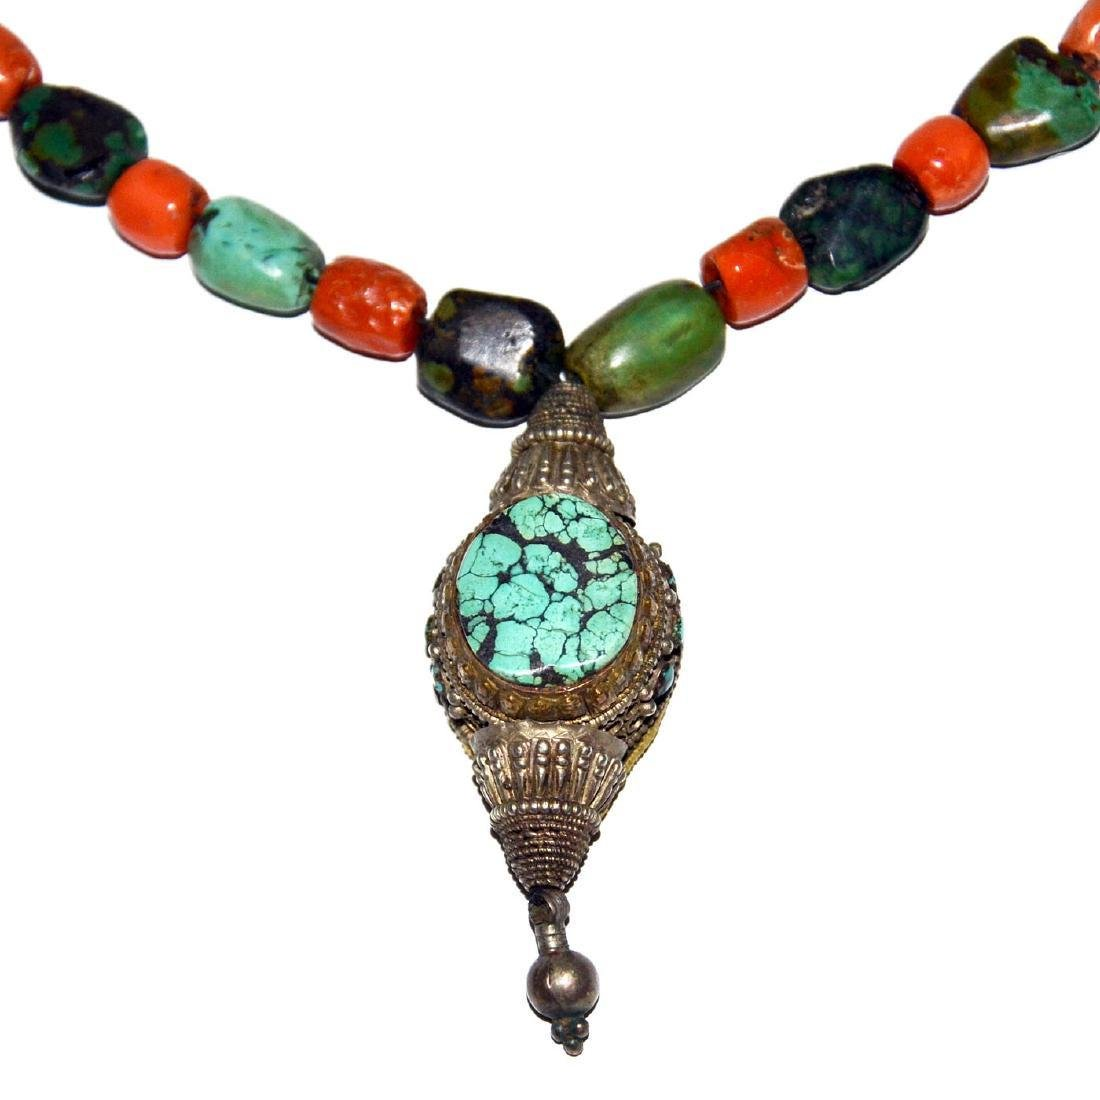 Tibetan Coral and Turquoise Necklace with Silver gau